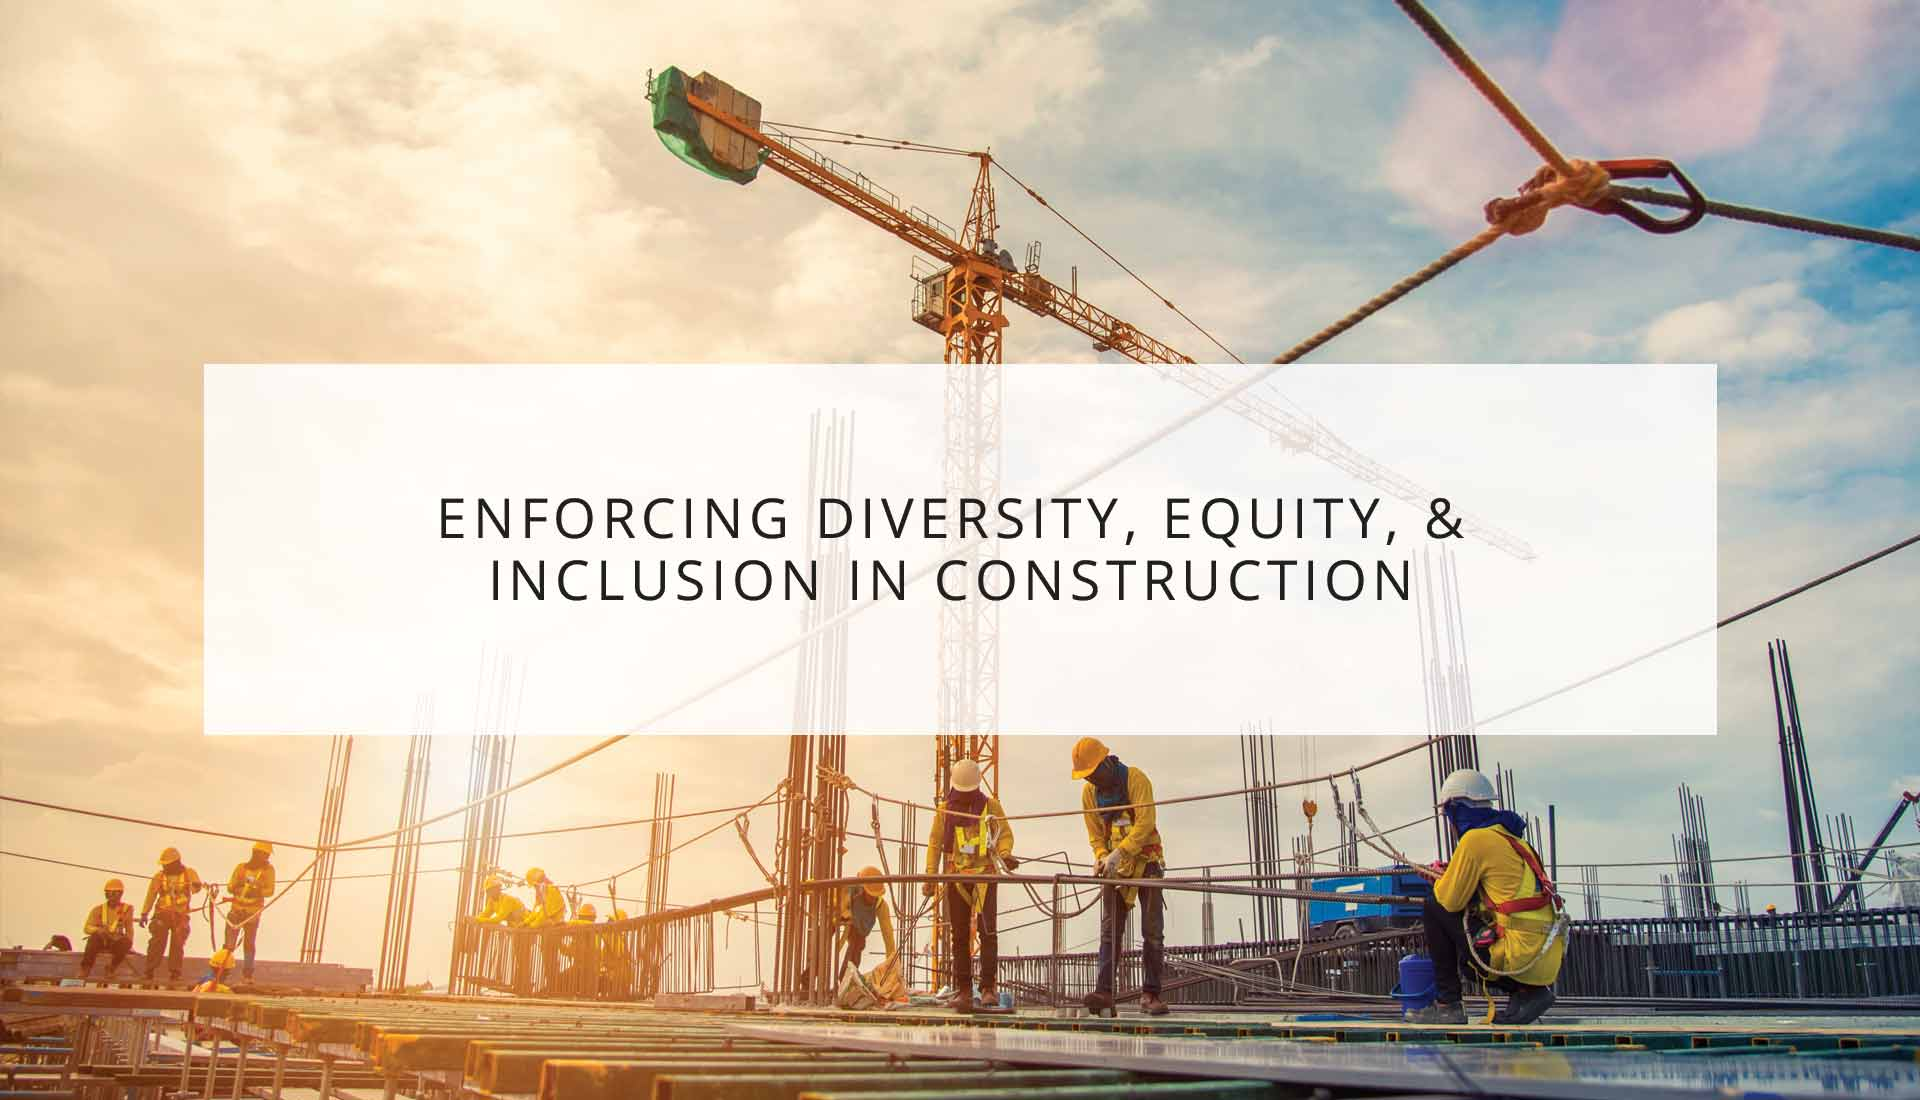 Enforcing Diversity, Equity, and Inclusion in Construction